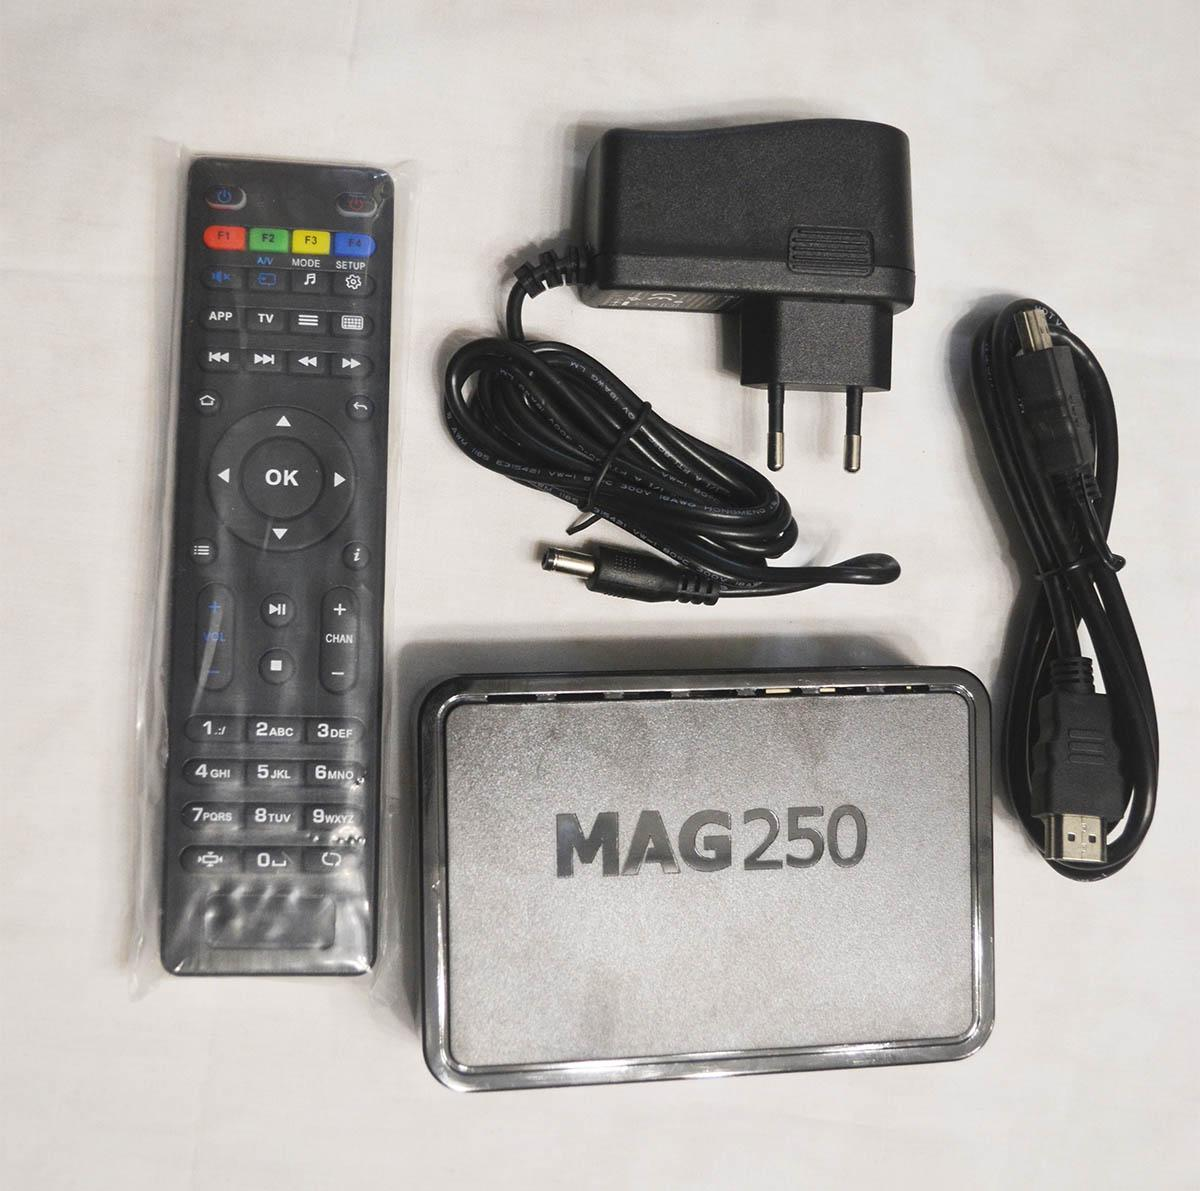 New MAG250 Linux TV Media HDD Player STI7105 Firmware R23 Set Top Box Same as Mag322 MAG420 System streaming